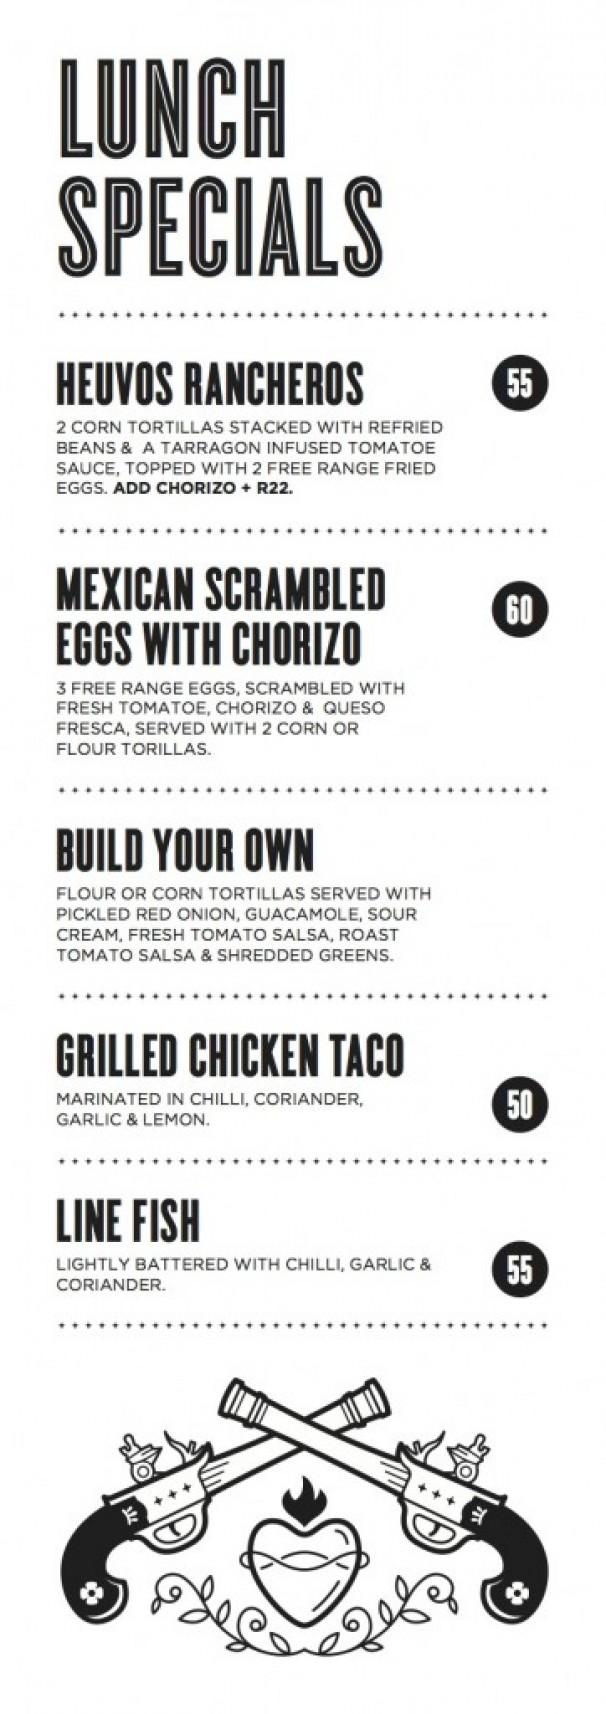 El burro mexican lunch specials mr cape town for Lunch specials